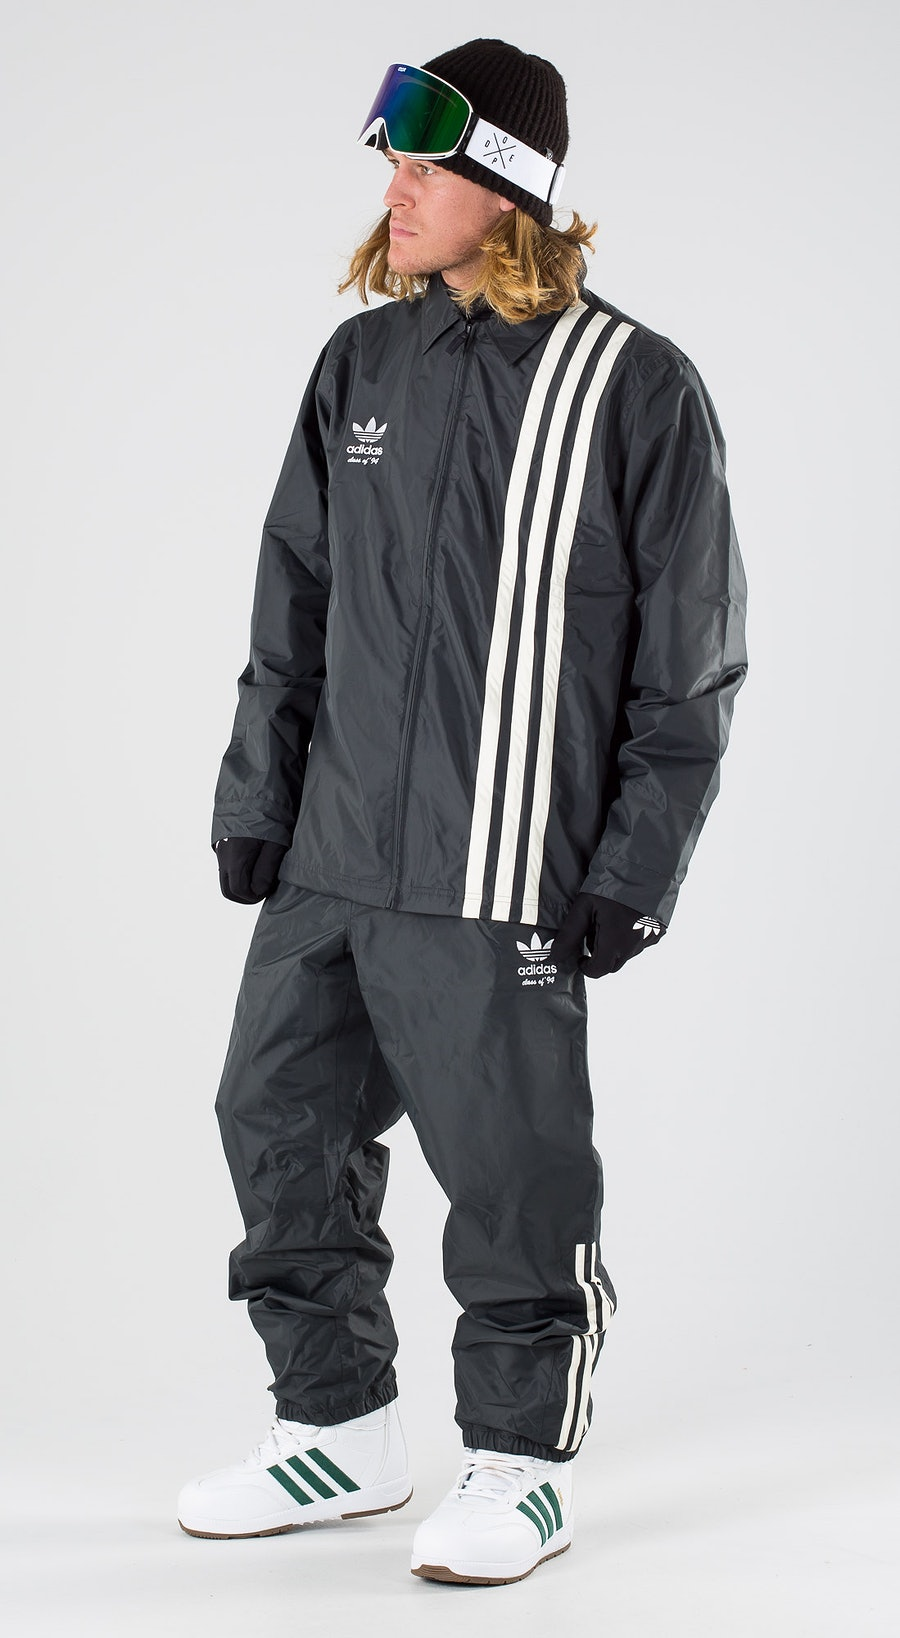 Adidas Snowboarding Civilian Carbon/Active Blue/Cream White Snowboard clothing Multi